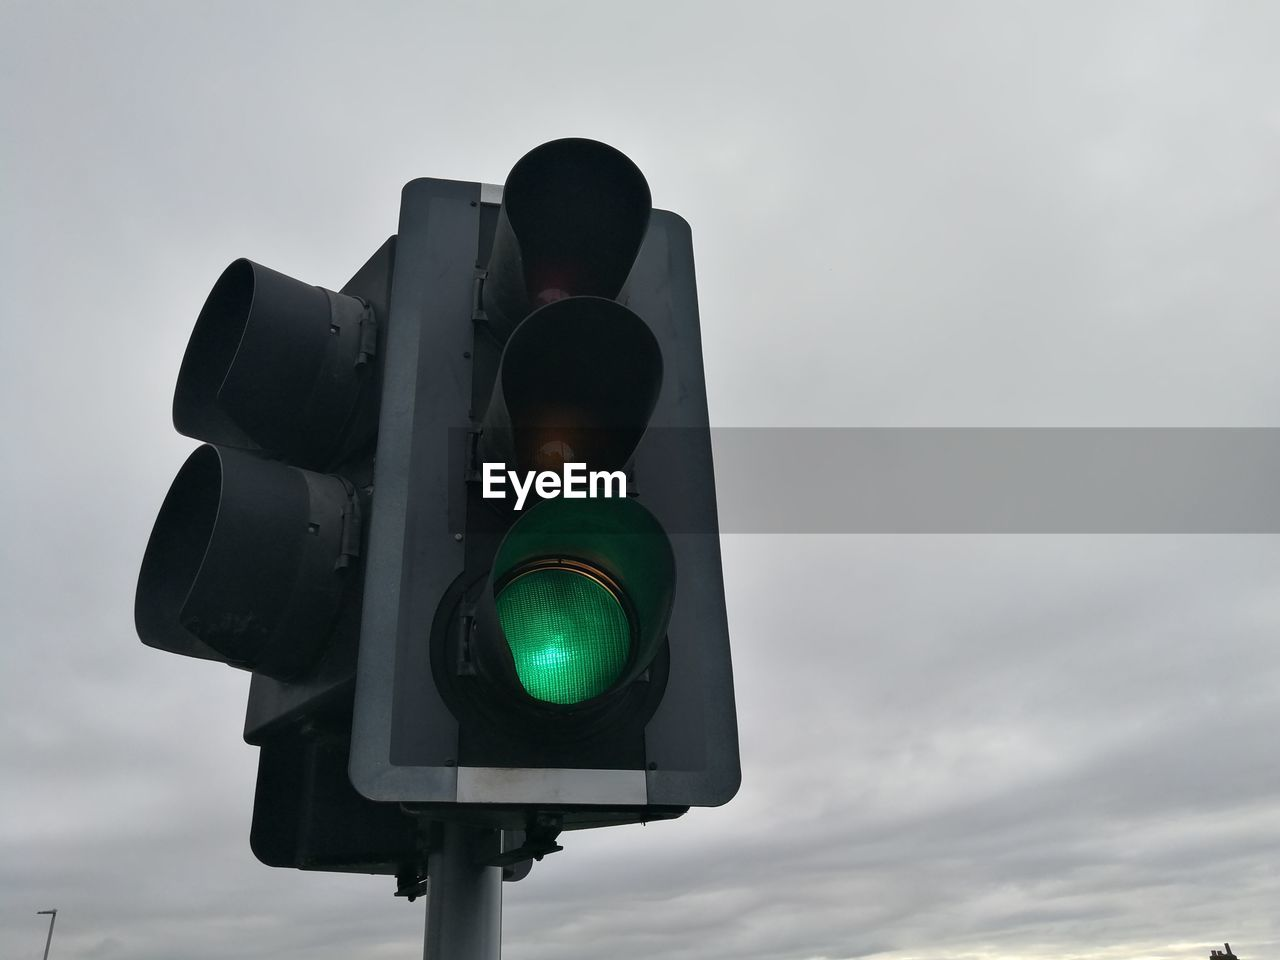 sky, sign, light, cloud - sky, stoplight, road signal, low angle view, safety, nature, communication, no people, guidance, illuminated, outdoors, security, day, green light, green color, protection